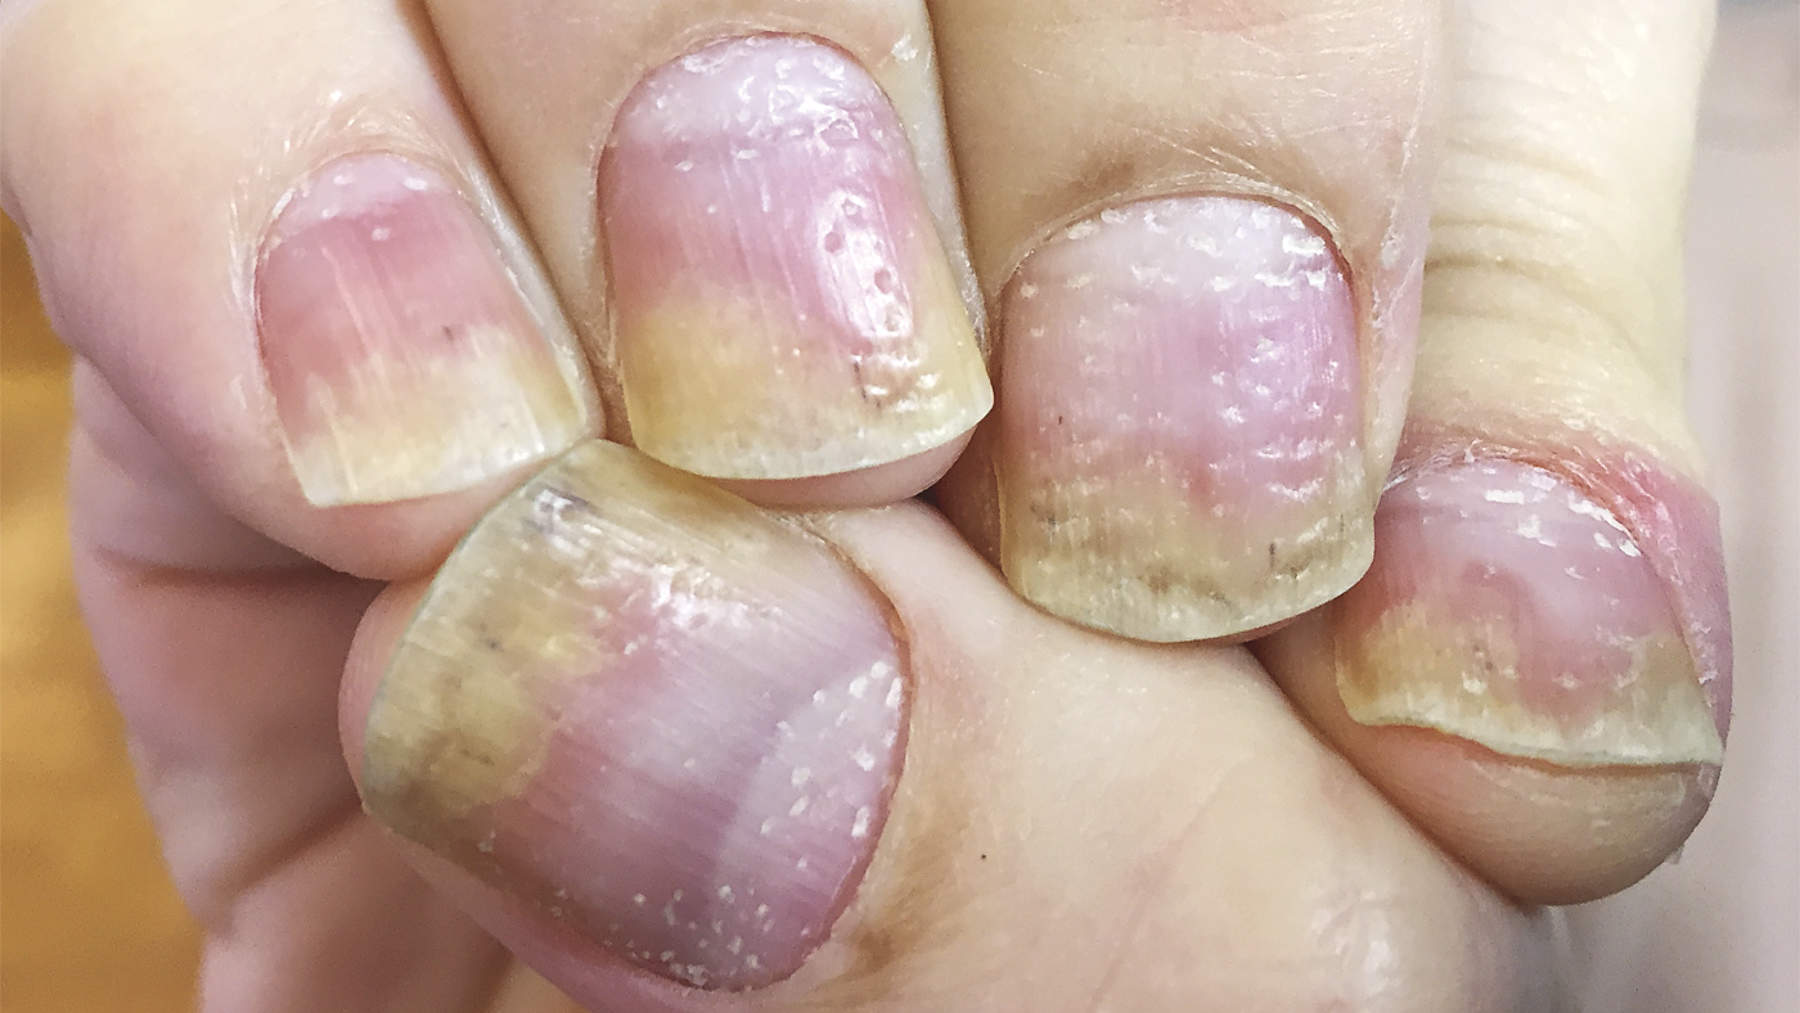 This Man's Pitted Nails Turned Out to Be Psoriasis - Health